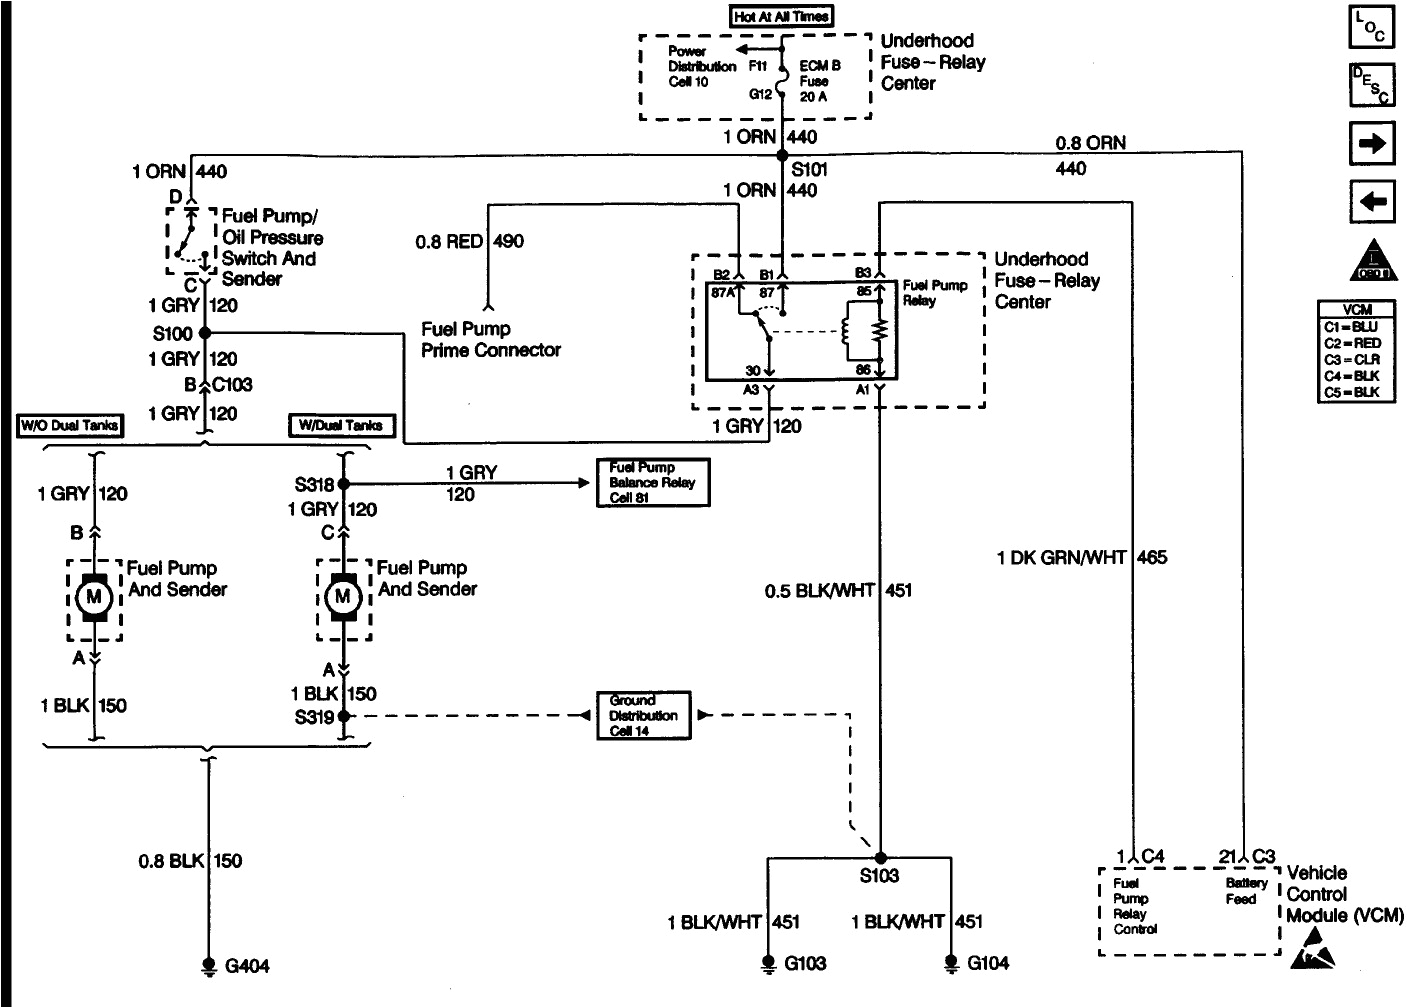 98 chevy silverado 1500 fuel pump wiring diagram wiring diagram blog 1998 chevy fuel pump wiring